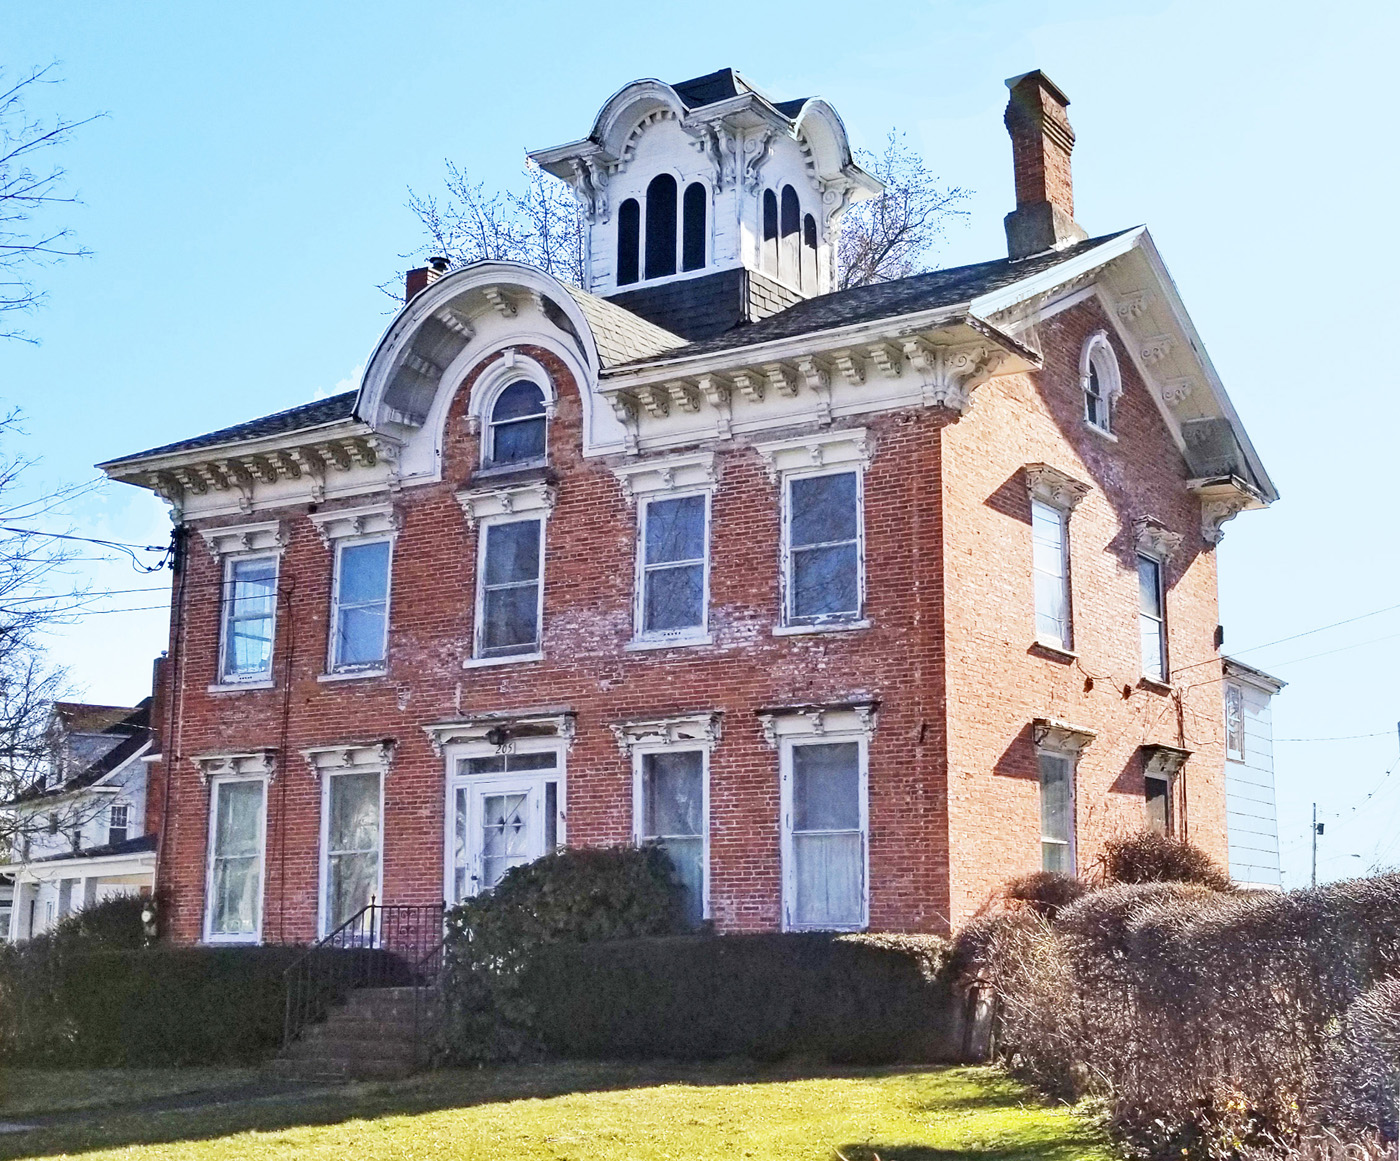 This stately building at the intersection of Main Street and Park Avenue has been a Brockport landmark for nearly 170 years.  Since 1851, it has changed ownership many times as a hotel, a nursing home, a private home, and a multi-family rental. In an estimated two more years, it will open as a Bed & Breakfast. Photo by Dianne Hickerson